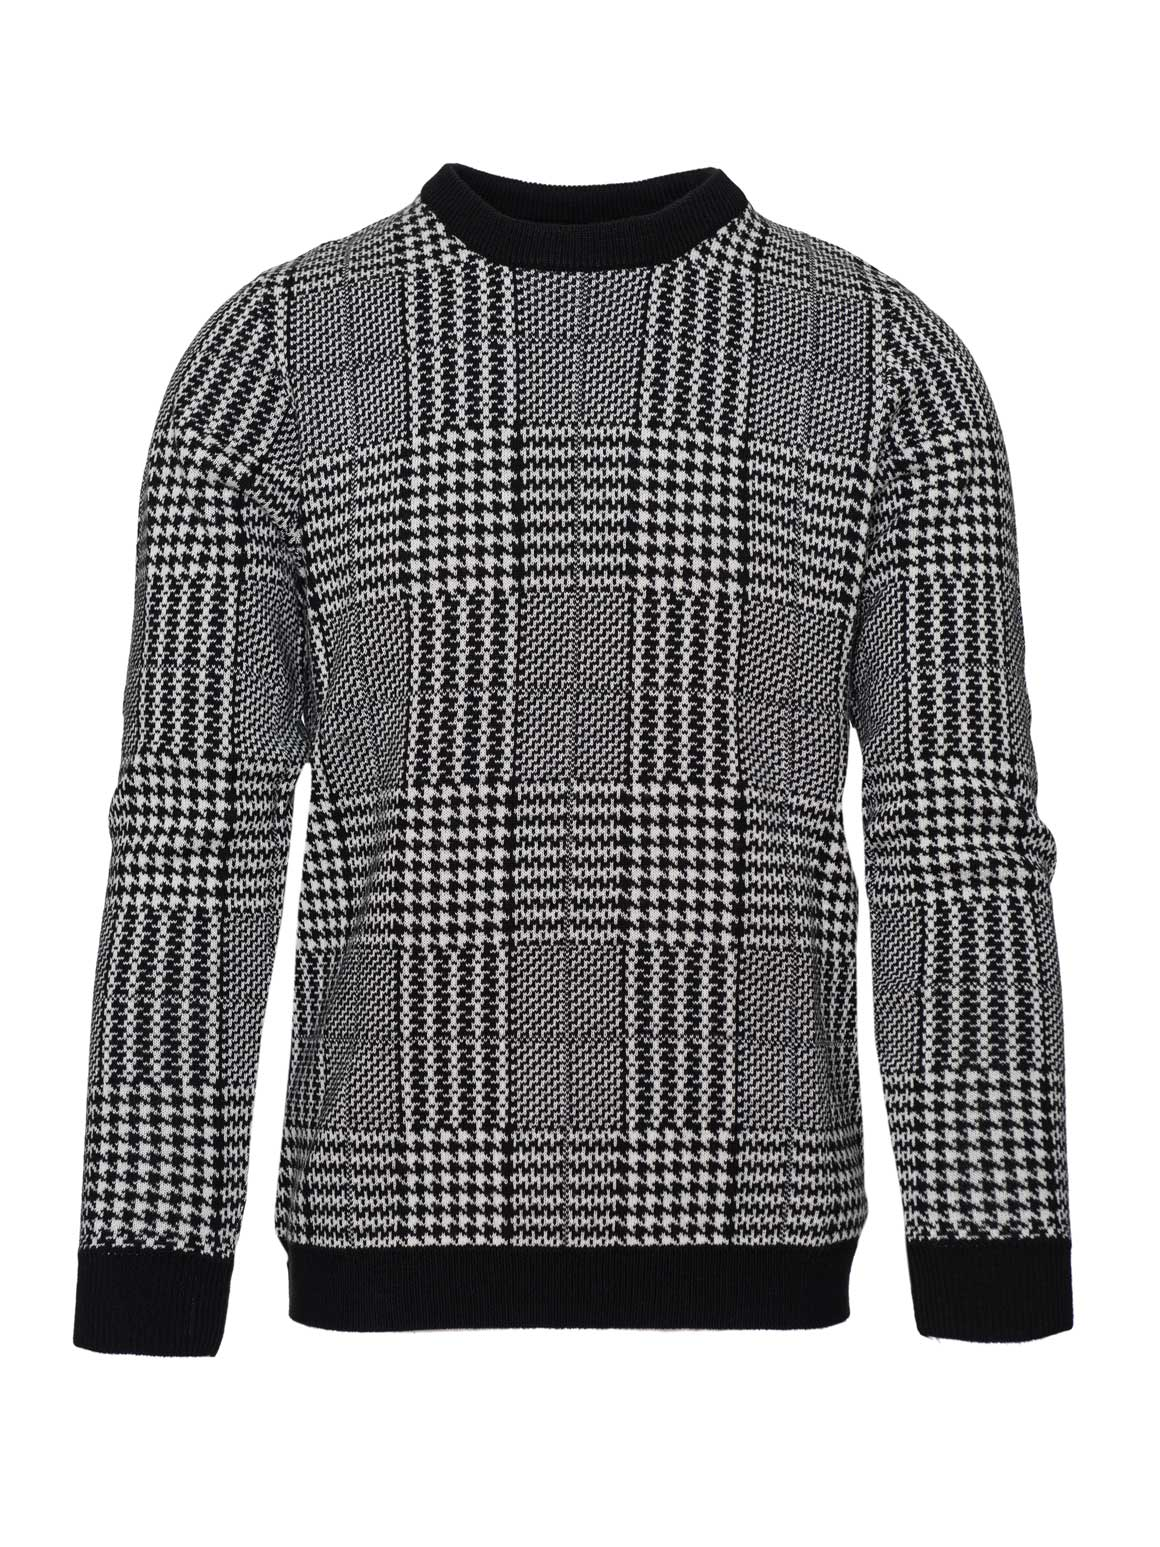 Crew Neck Sweater - Black & White Houndstooth Plaid